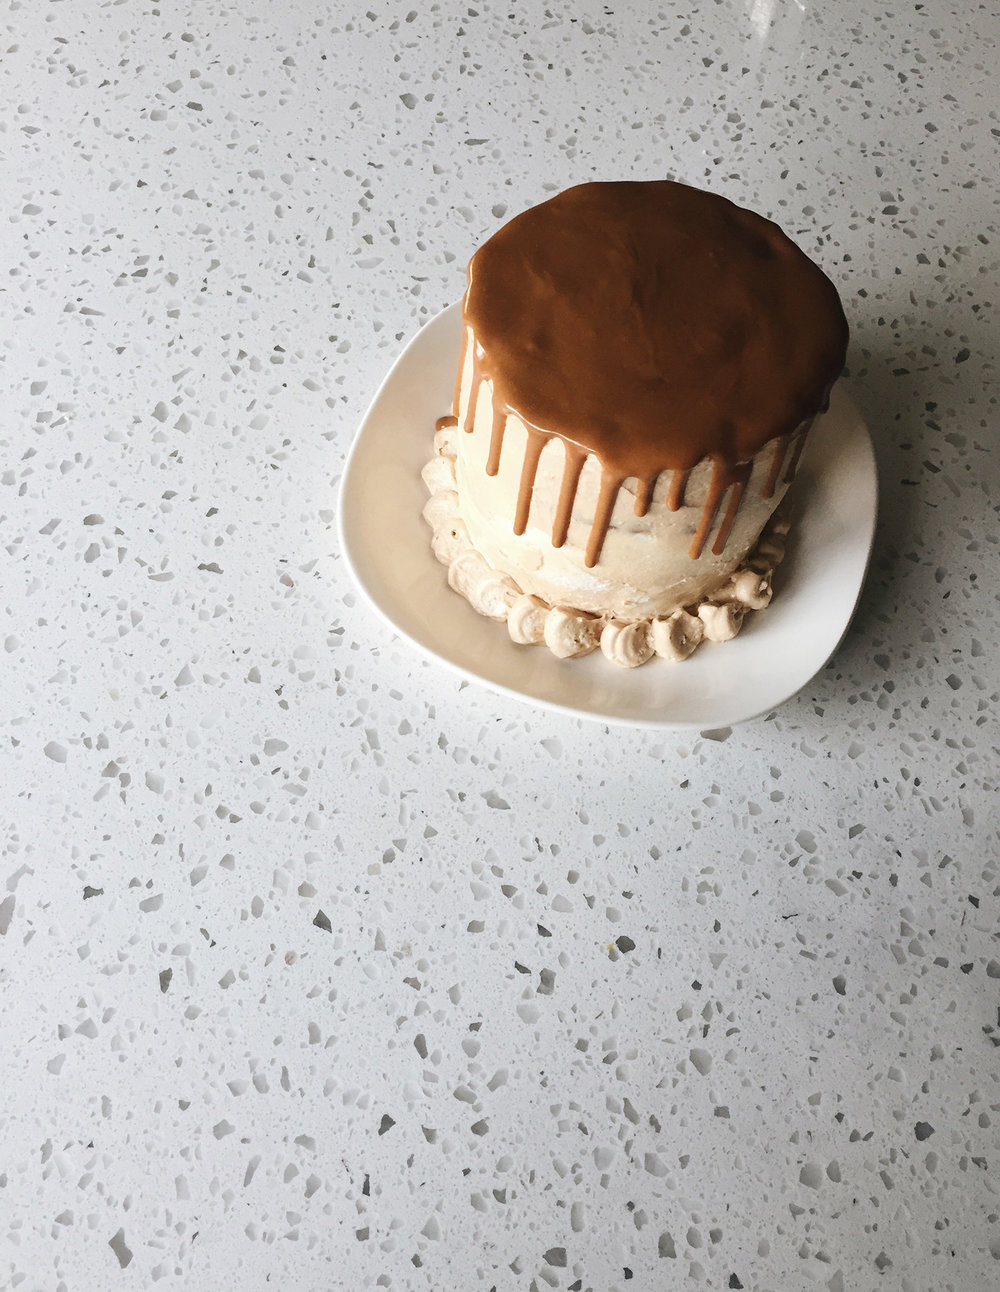 THE SPECULOOS DRIP CAKE I MADE THIS WEEKEND.